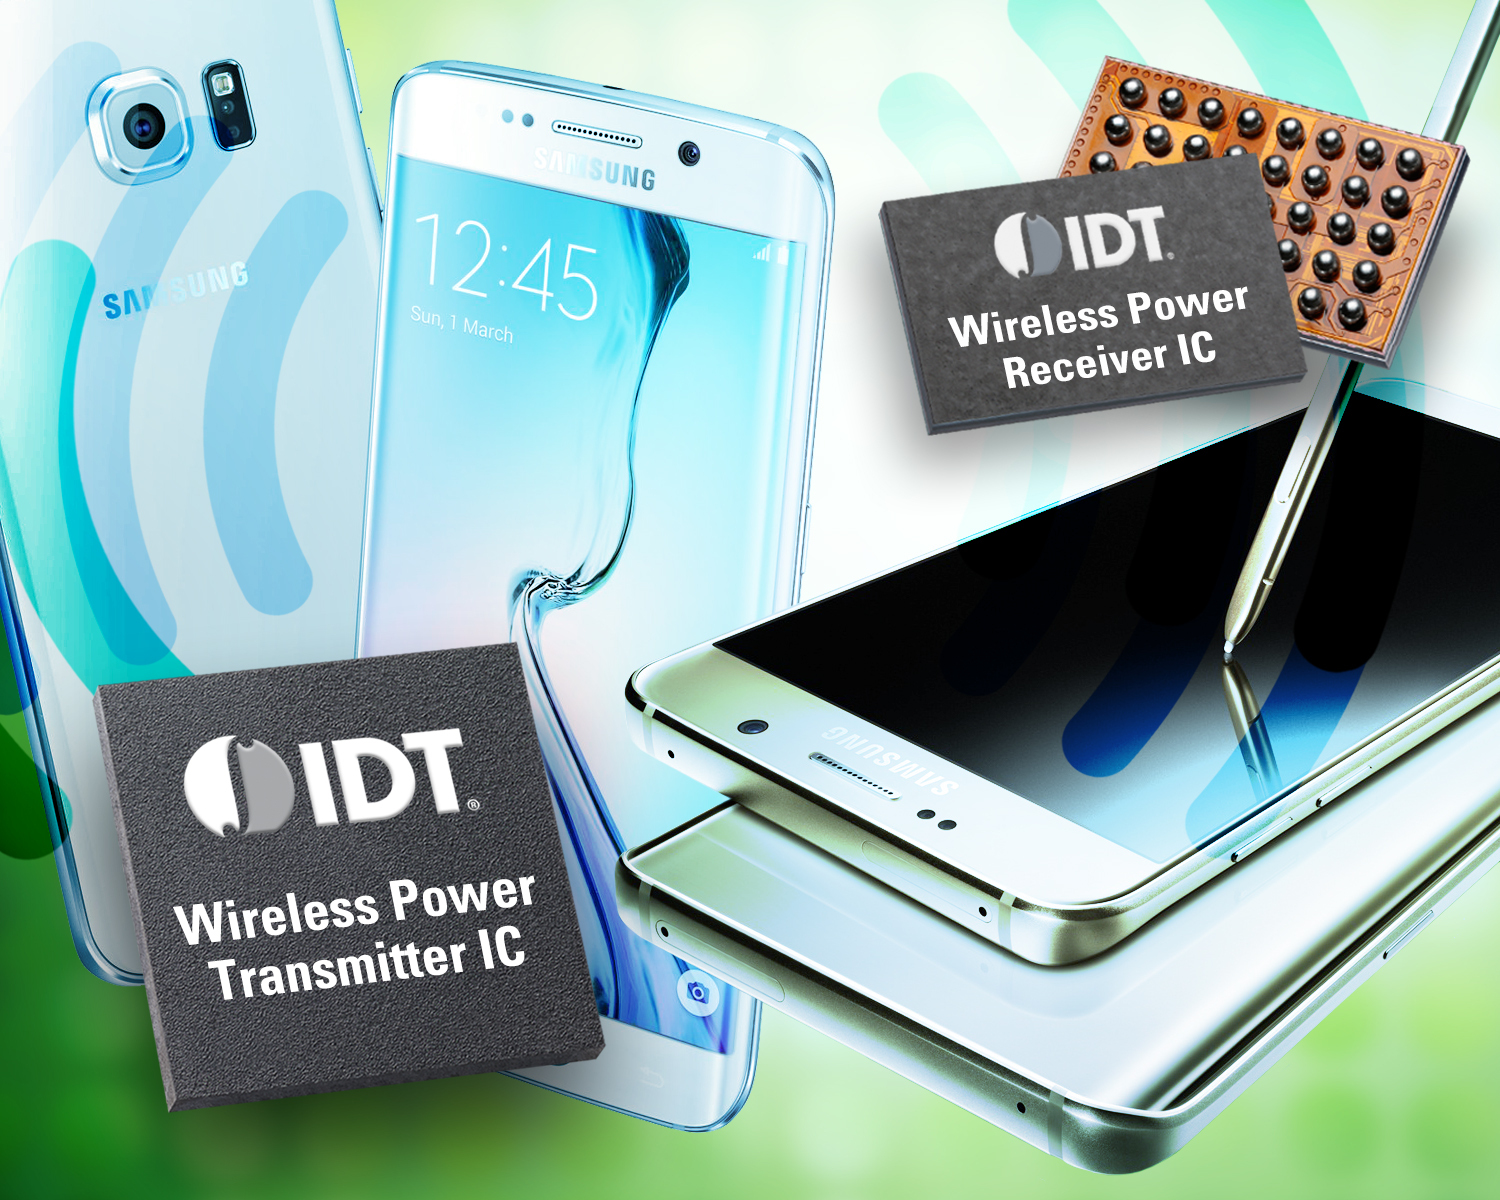 Idt Wireless Power Transmitter Wire Center 1998 Gmc Jimmy 42154 Fuse Box Diagram Teams With Samsung To Integrate Charging Business Rh Businesswire Com Diy